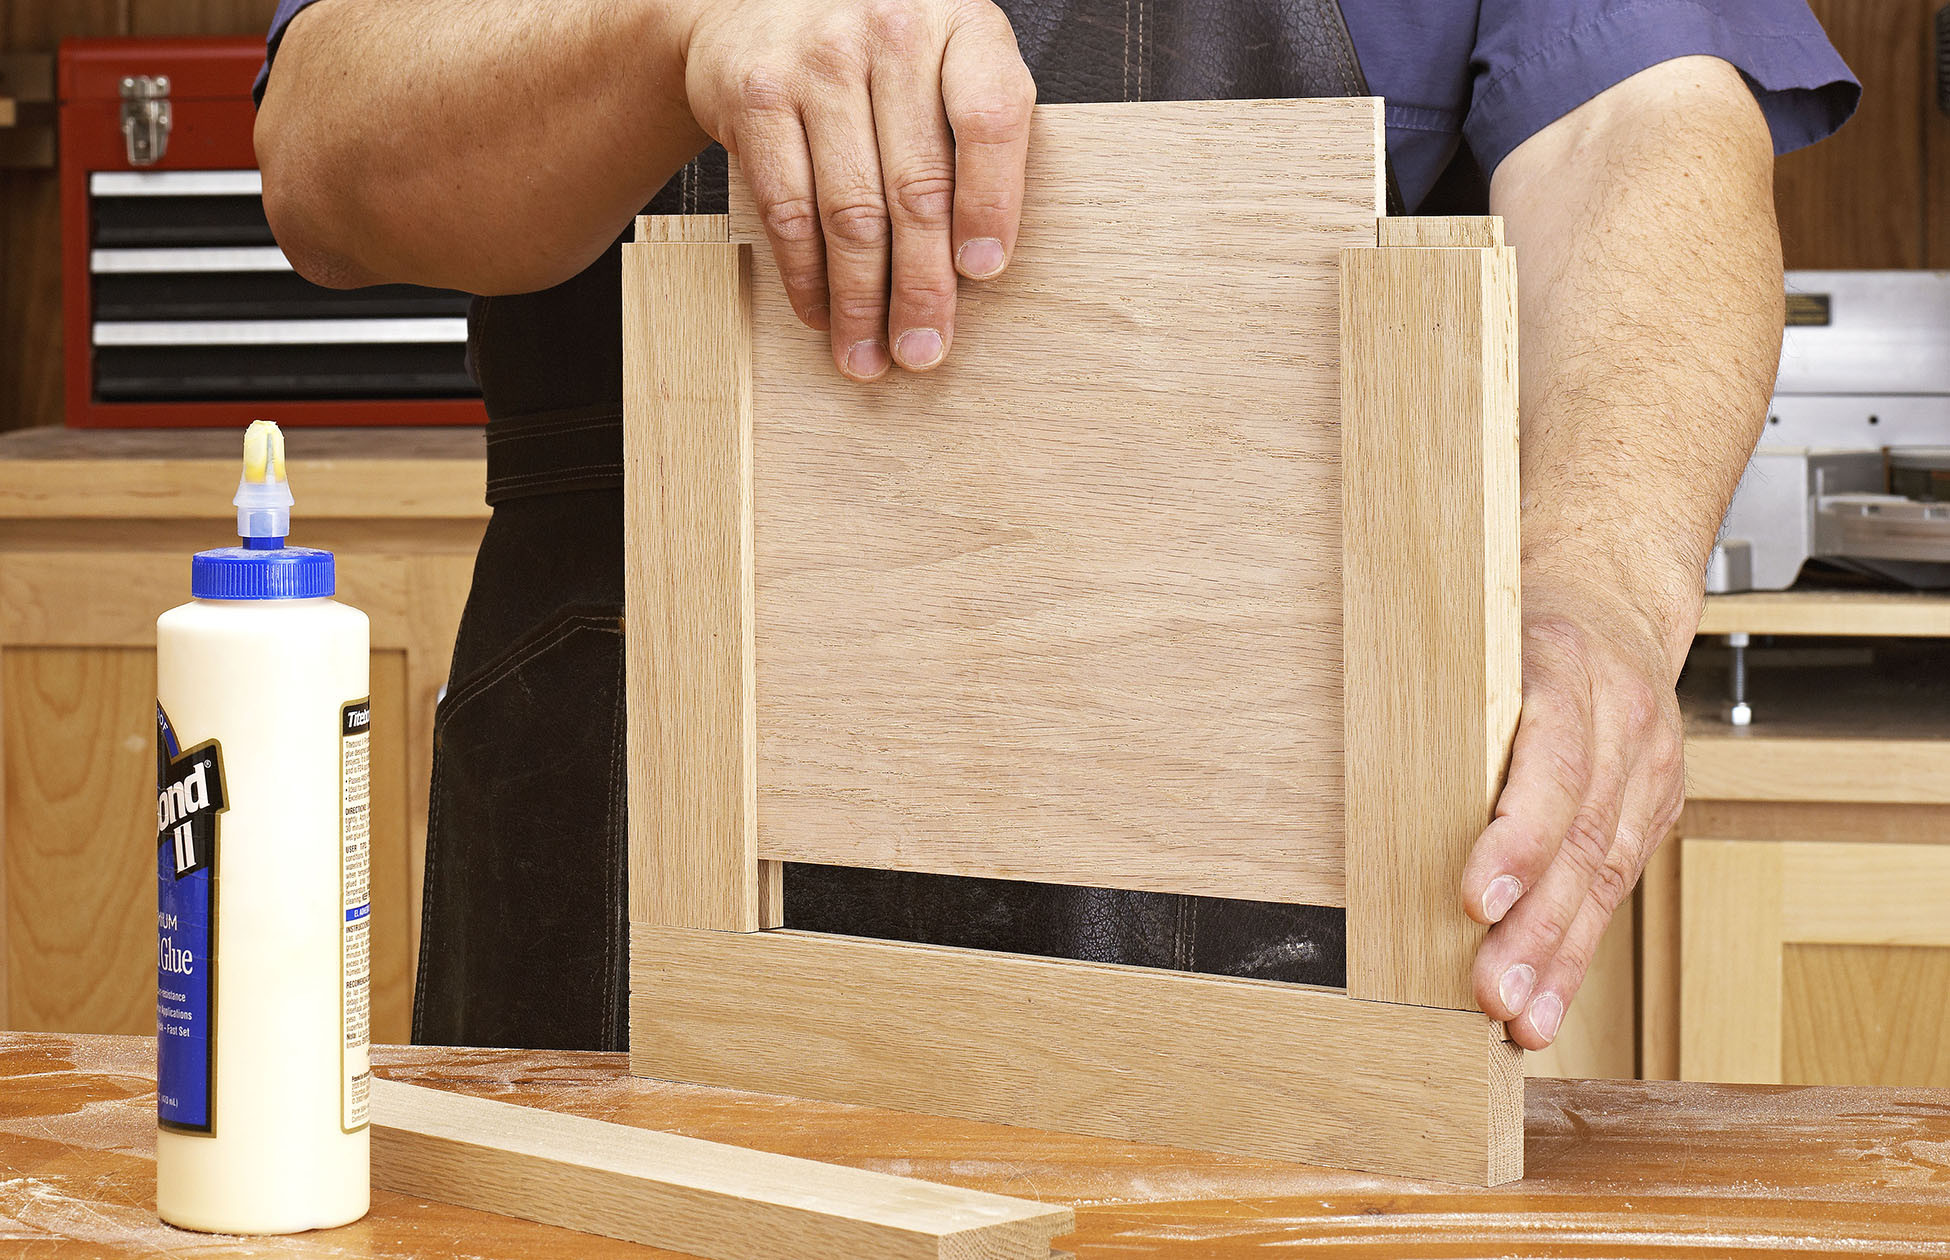 discount hardwood floors molding california of simple frame and panel doors in 30 minutes wood magazine within opener